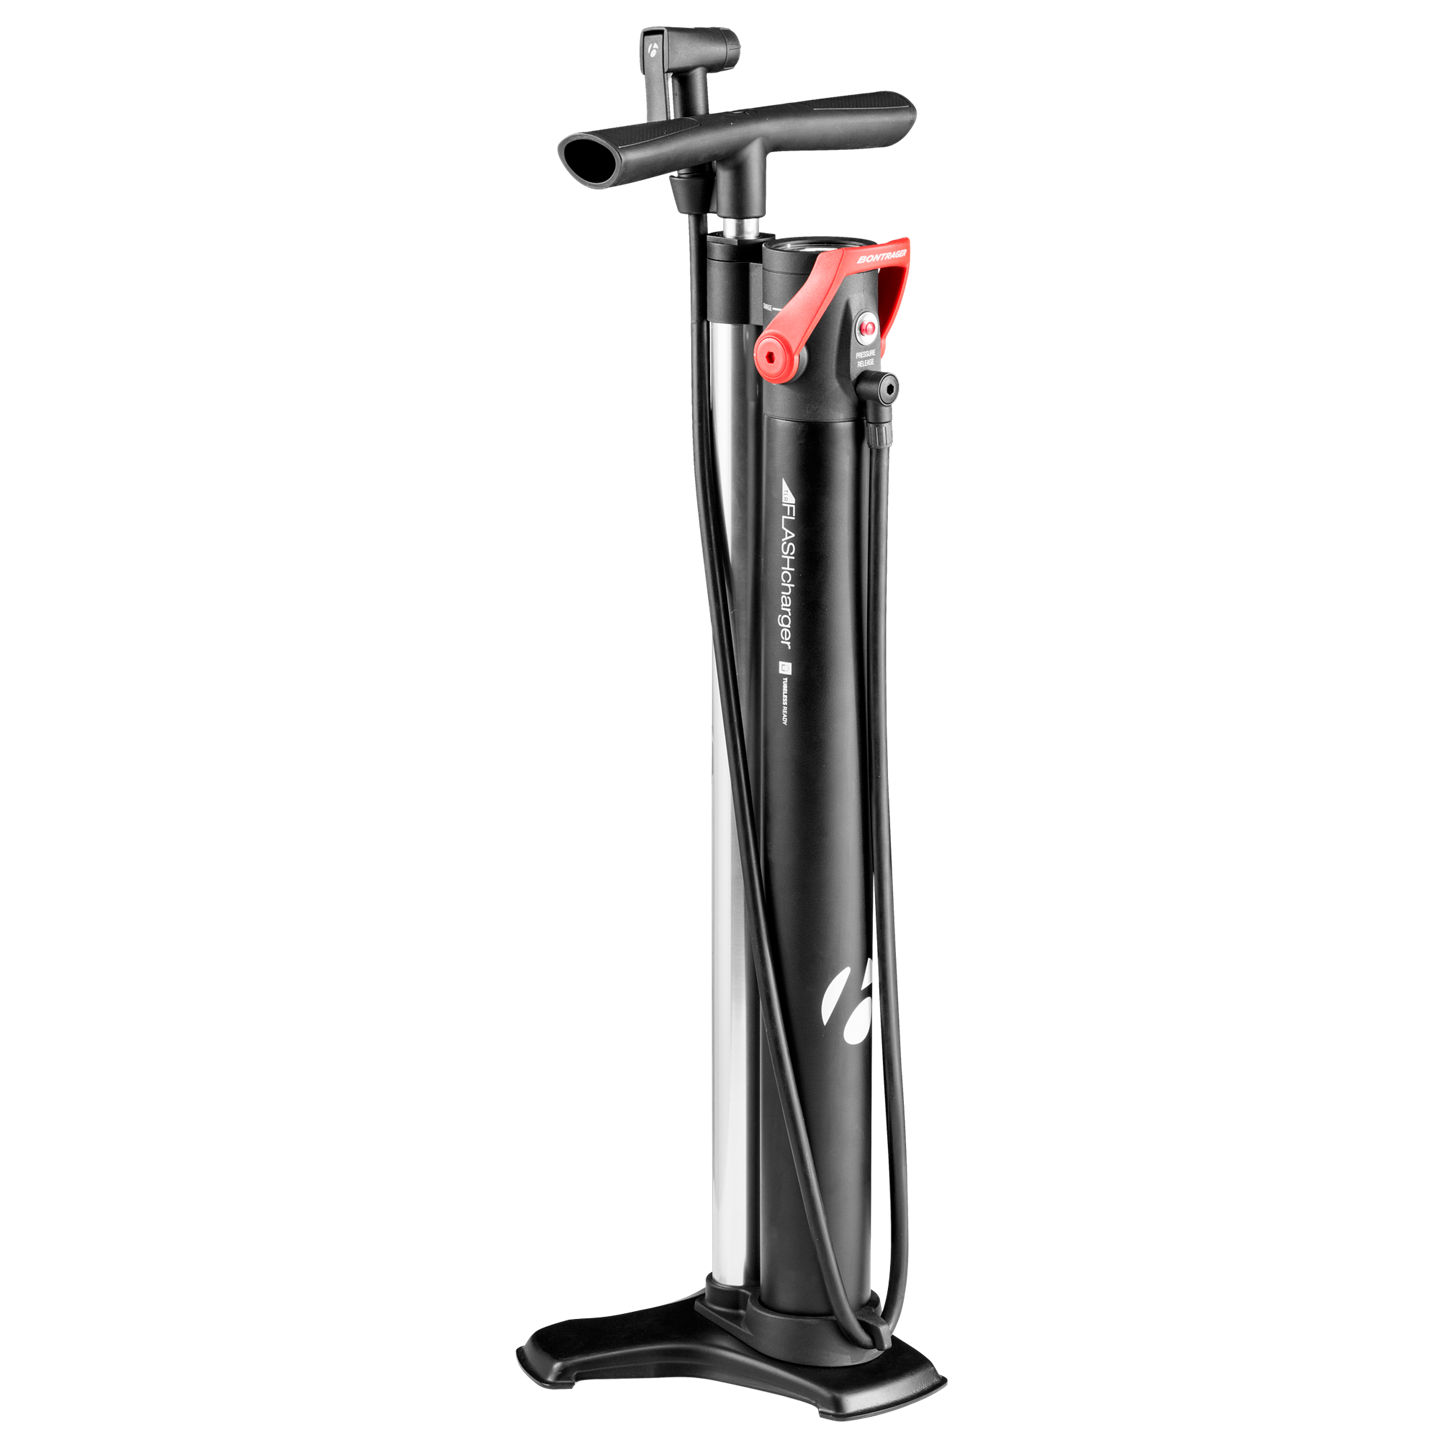 bontrager flash charger tubeless fahrrad standpumpe. Black Bedroom Furniture Sets. Home Design Ideas